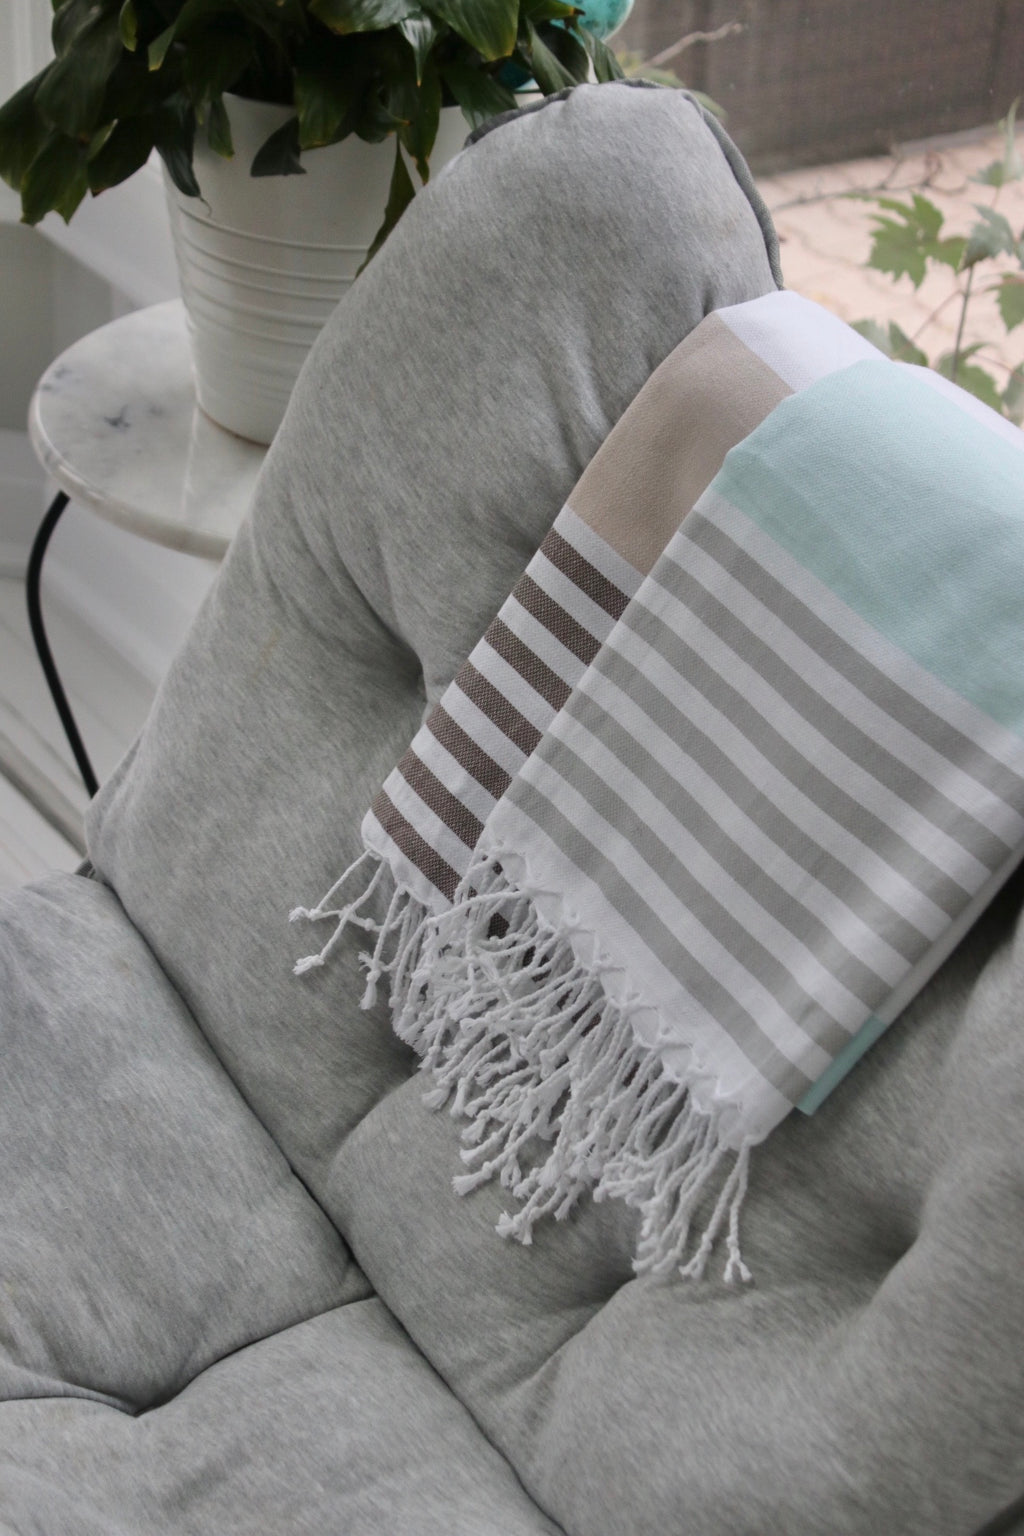 koton kulture toronto turkish towel the classic peshtemal with white stripe at the very bottom and tassels in turquoise or in beige by a plant on a chair